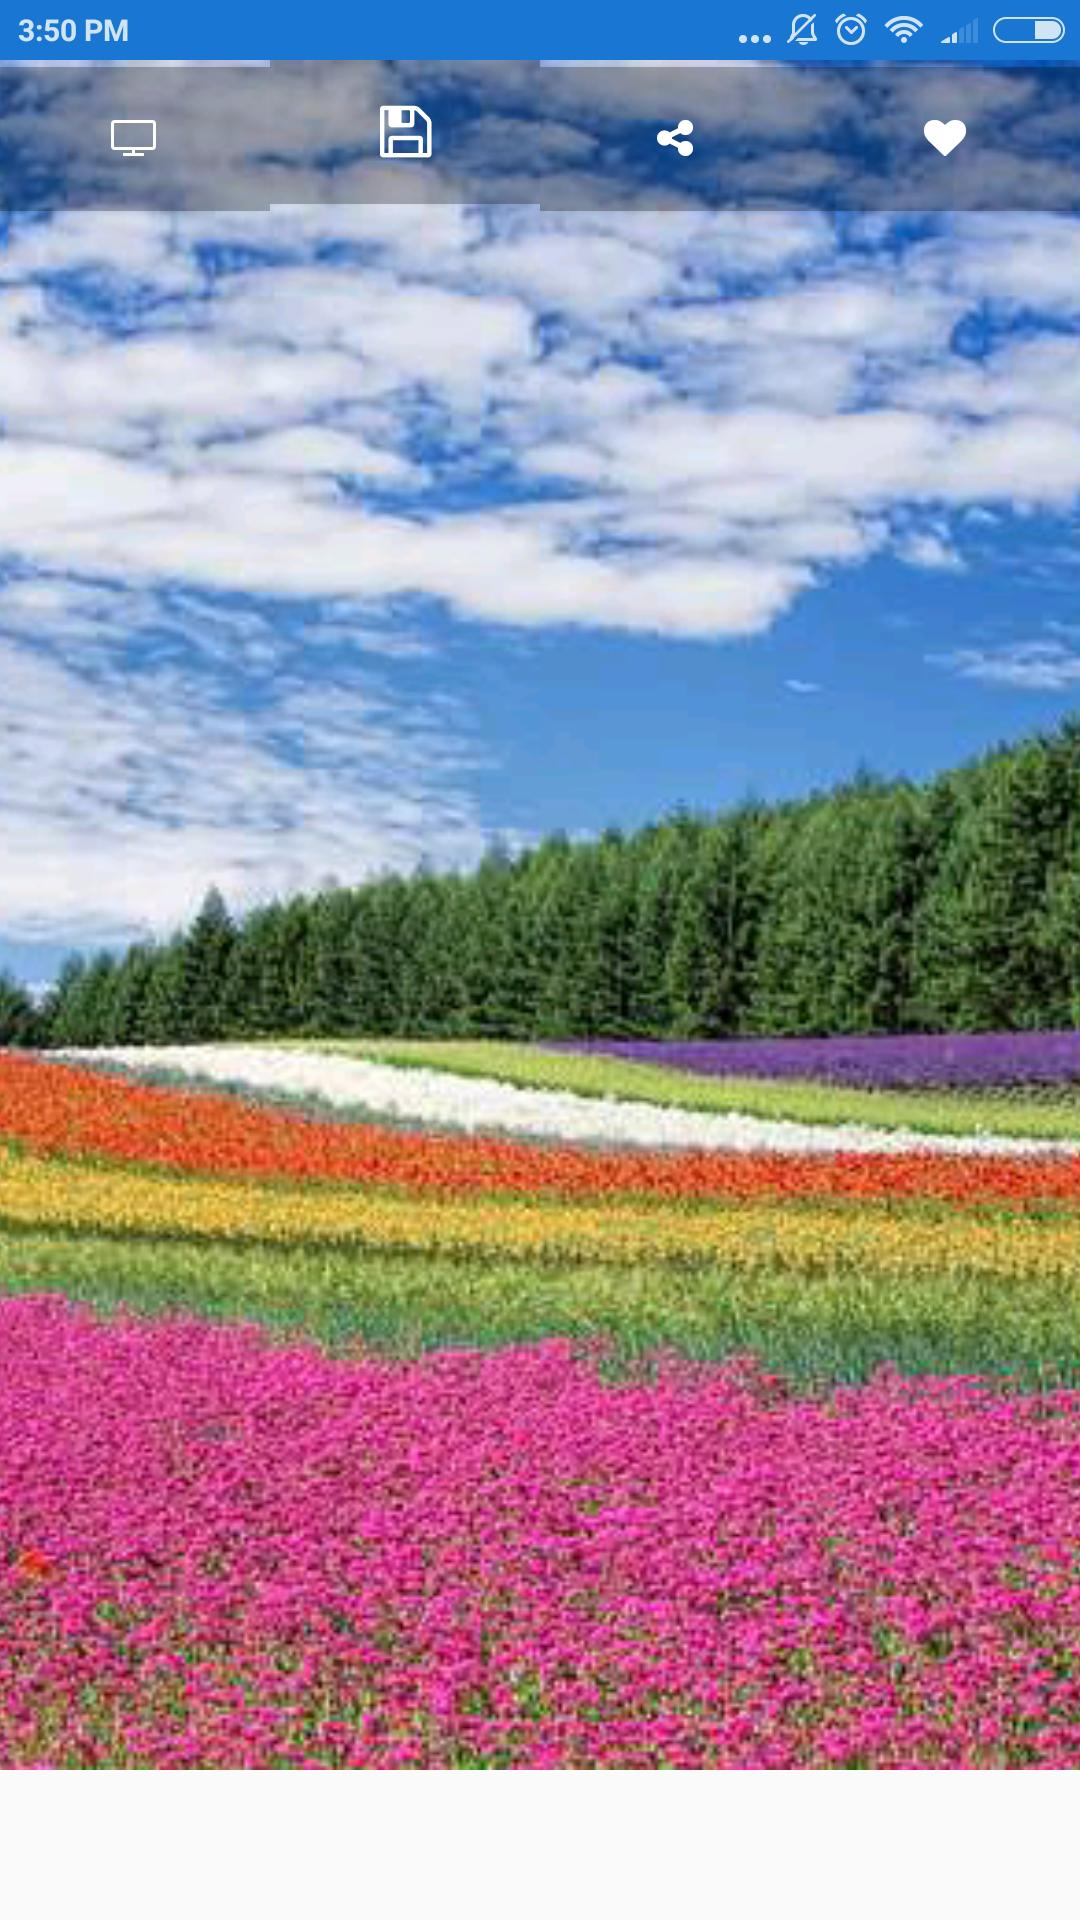 Free Japanese Wallpaper Hd For Android Apk Download